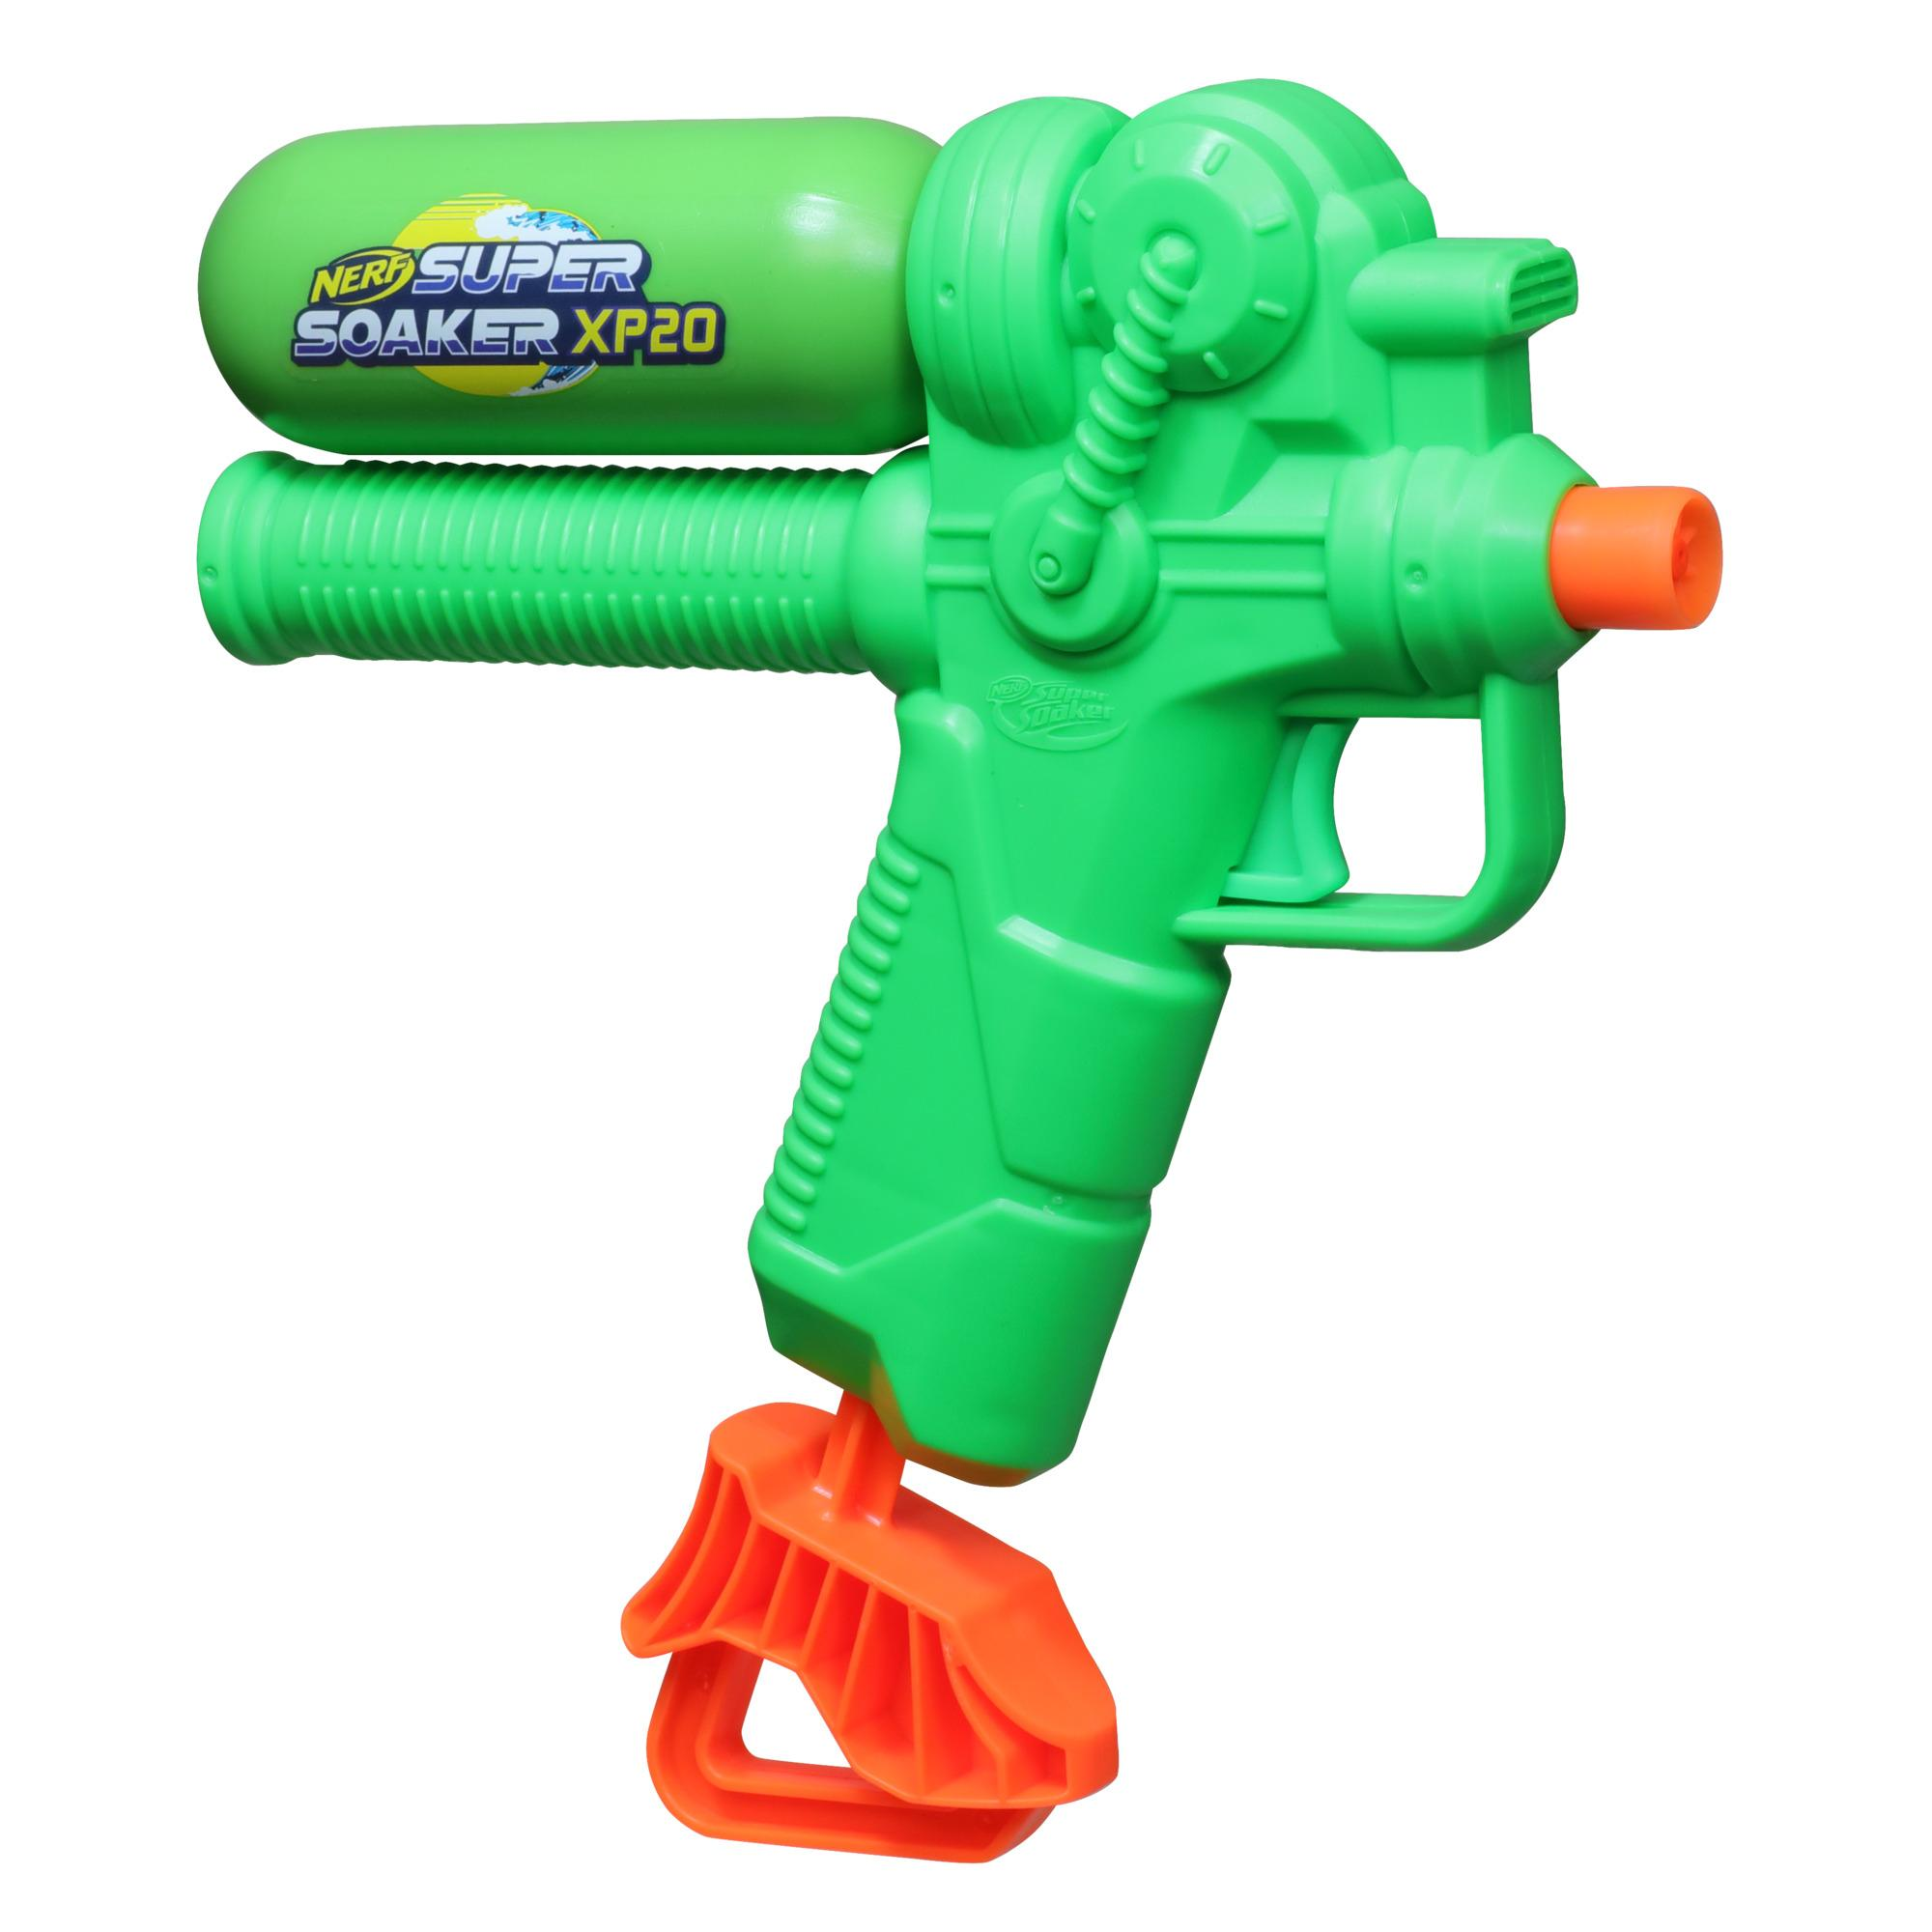 Nerf Super Soaker XP20-AP Water Blaster, Tank Made With Recycled Plastic, Air-Pressurized Continuous Water Blast